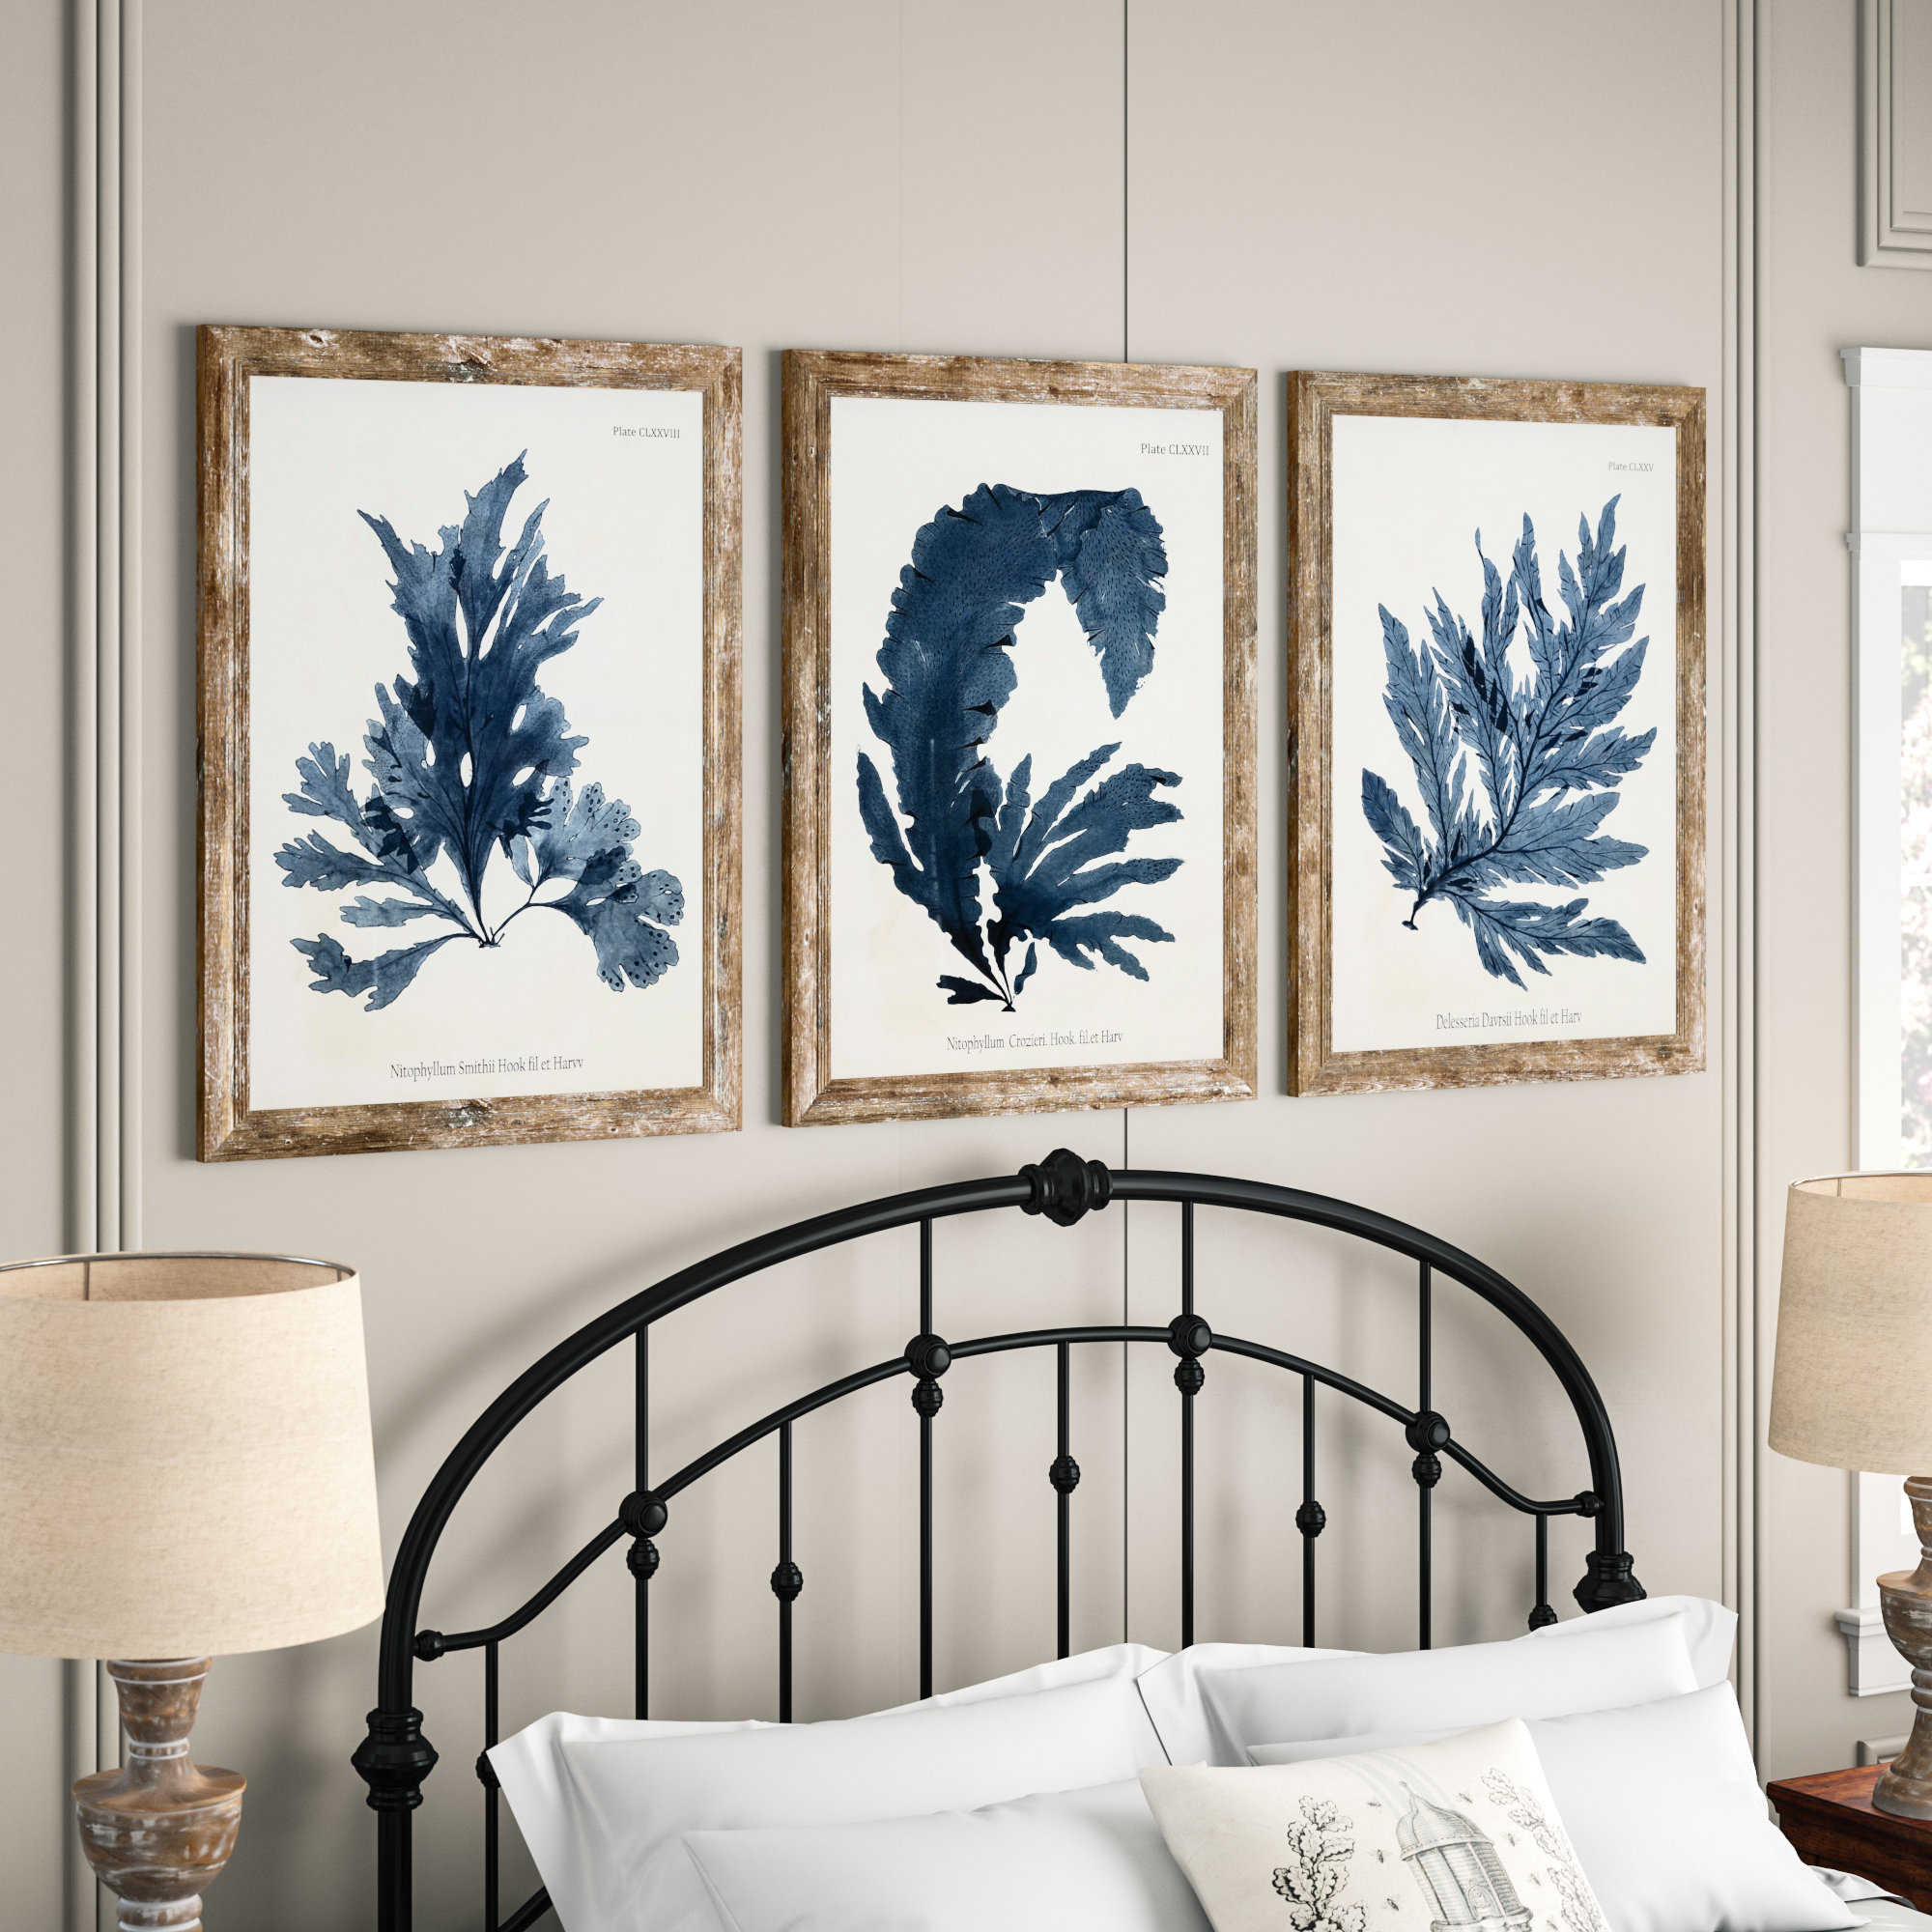 Coastal Wall Art | Birch Lane With Reeds Migration Wall Decor Sets (set Of 3) (View 5 of 30)